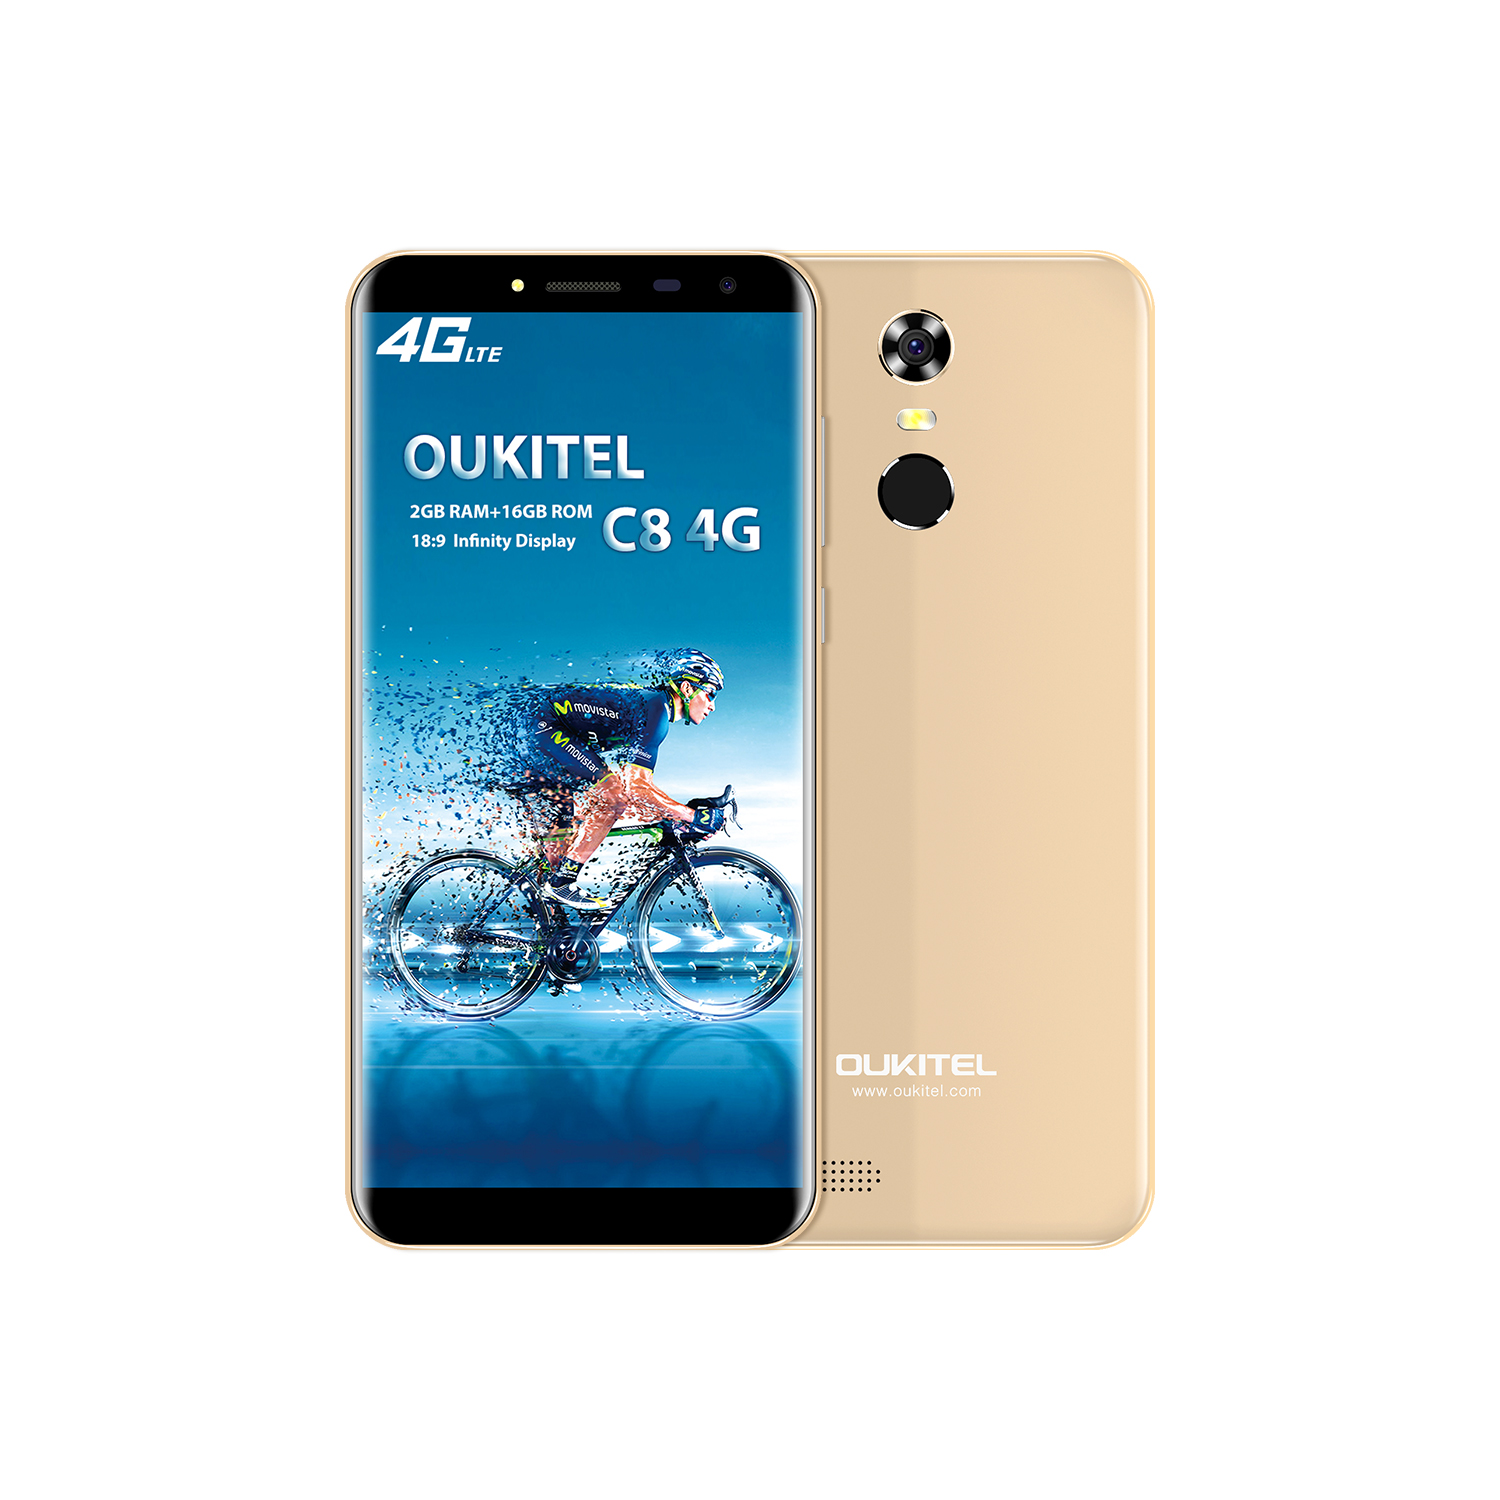 Wholesale Oukitel C8 Android 4g Smart Phone Gold From China